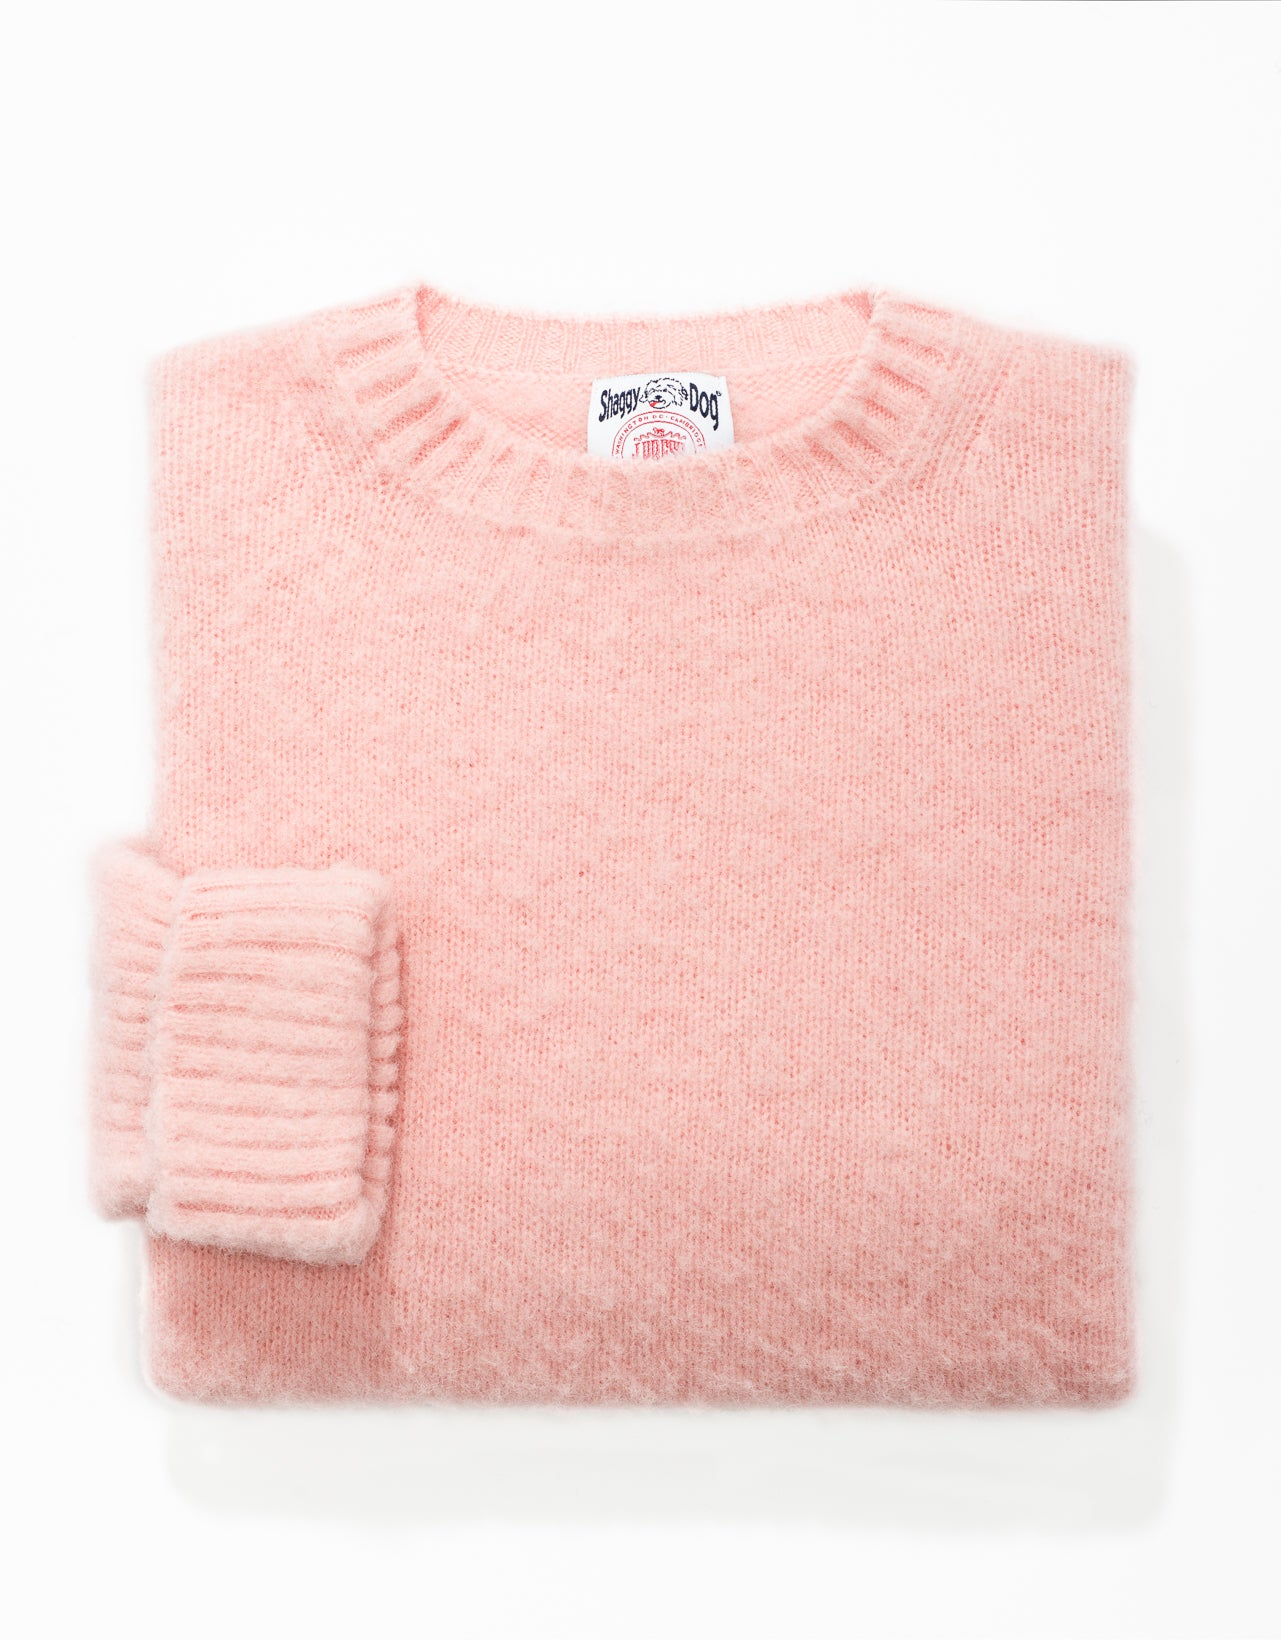 CLASSIC FIT SHAGGY DOG SWEATER - PINK